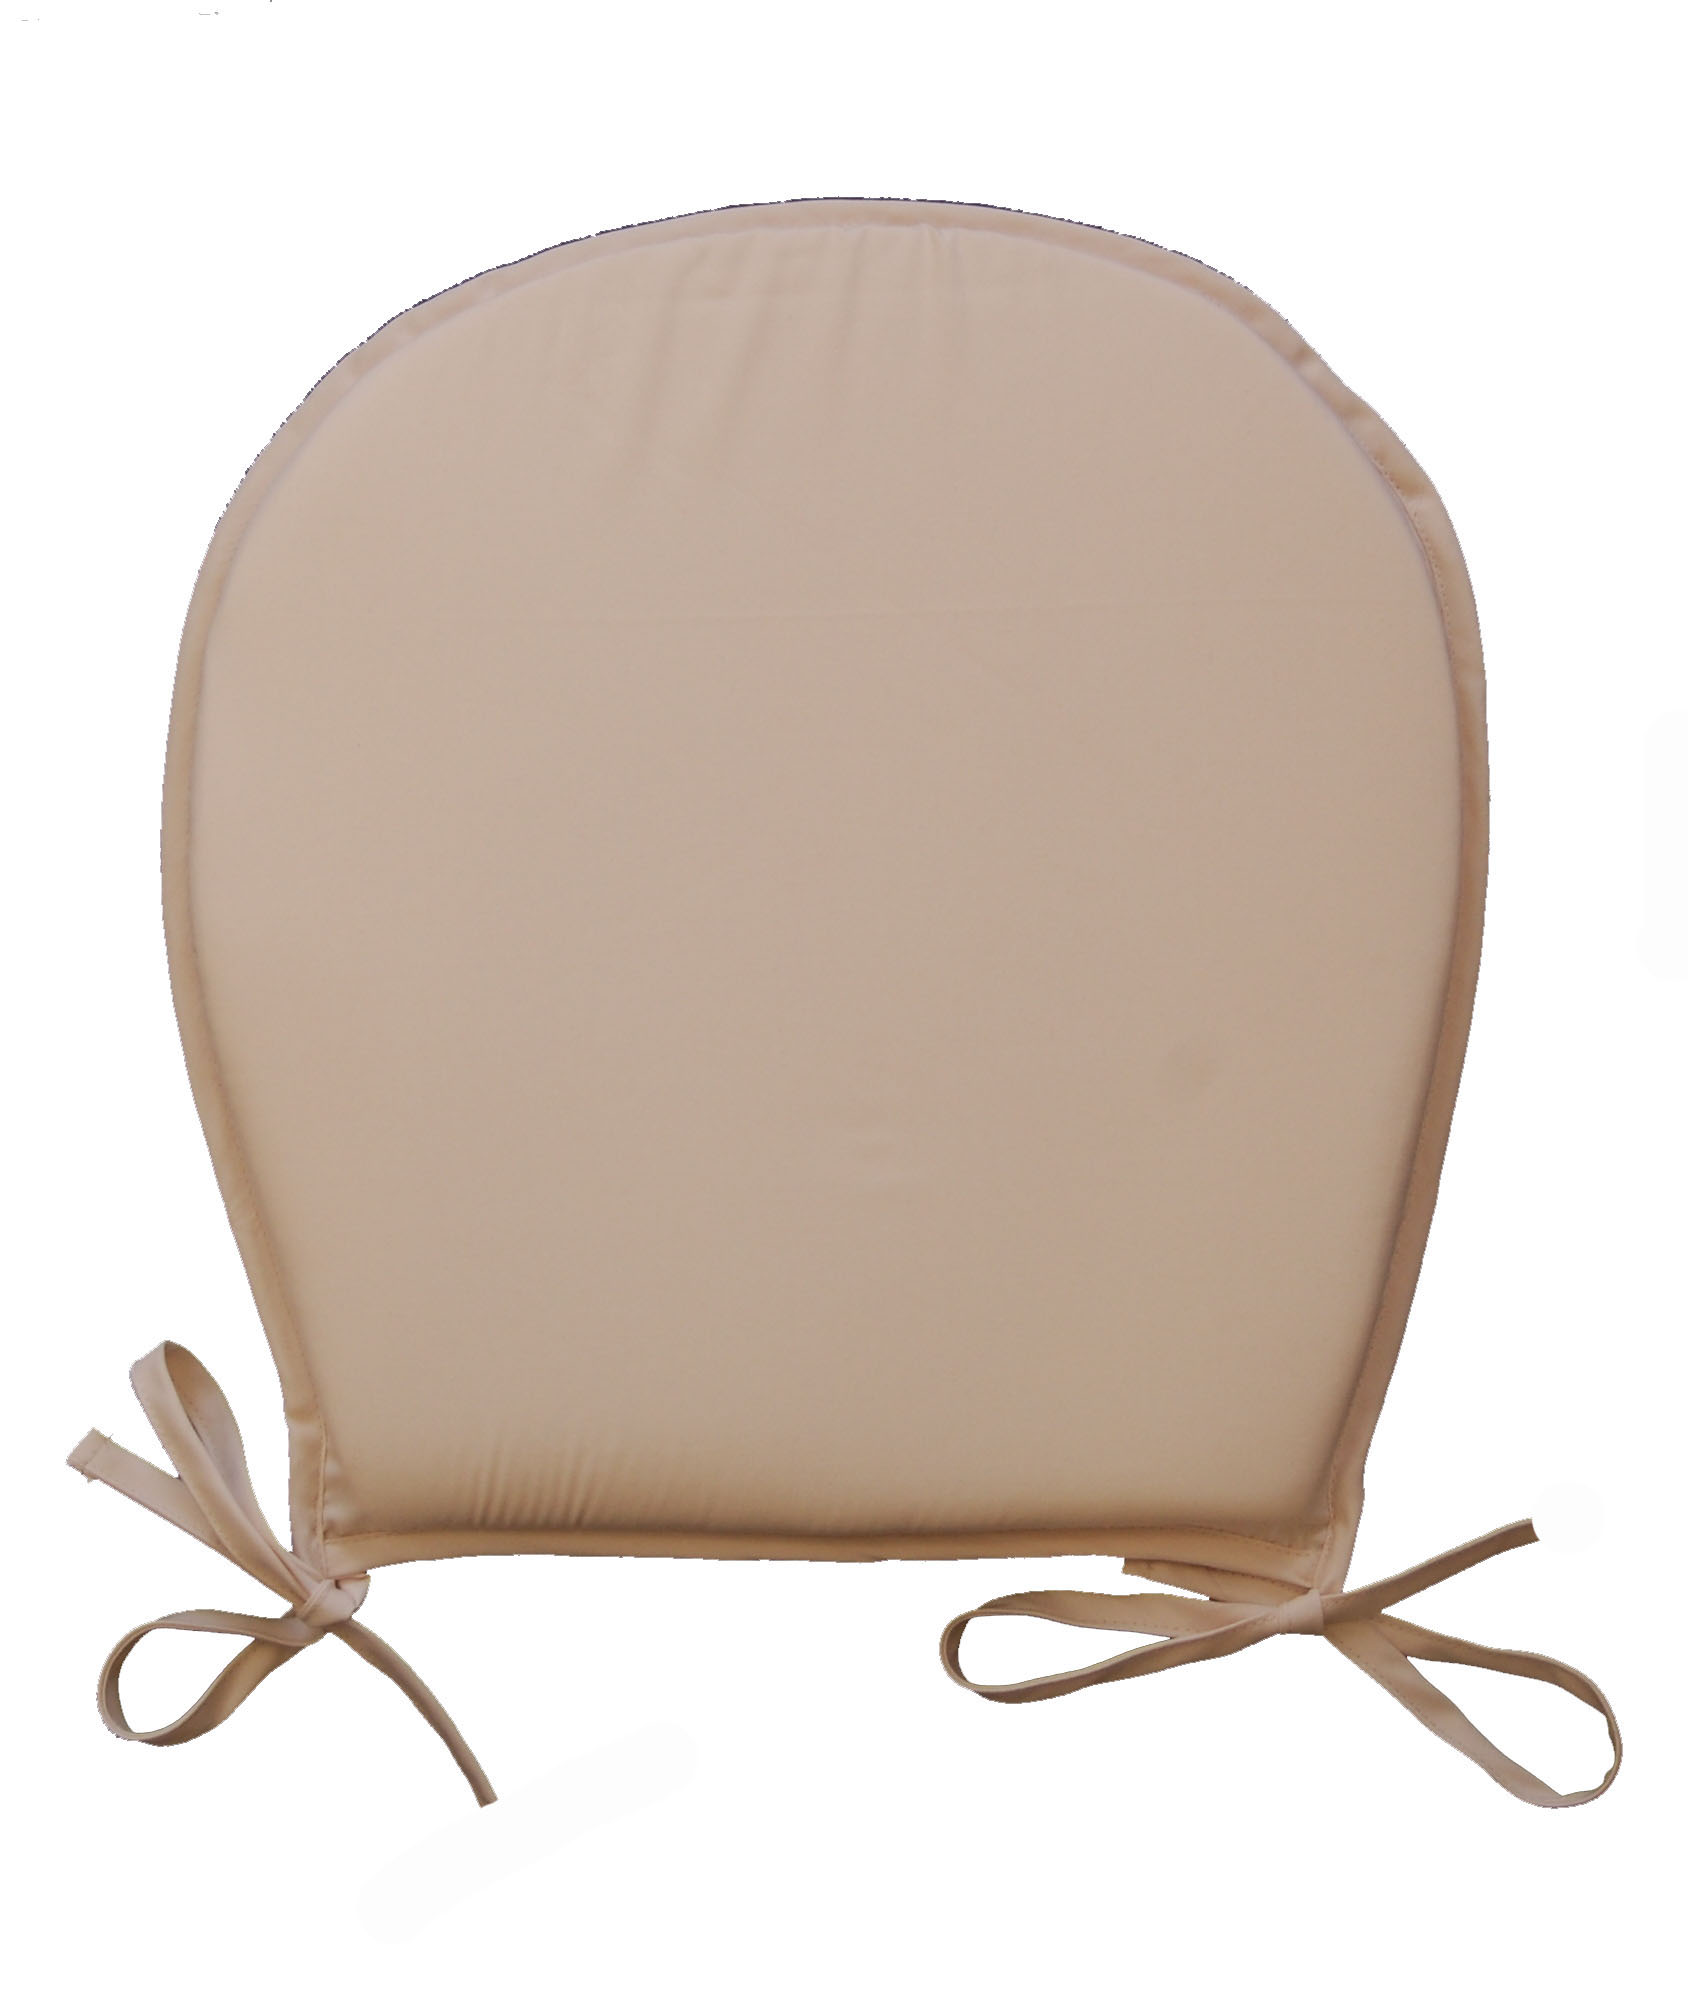 Excellent Non-Slip Kitchen Chair Pads 1688 x 2000 · 189 kB · jpeg